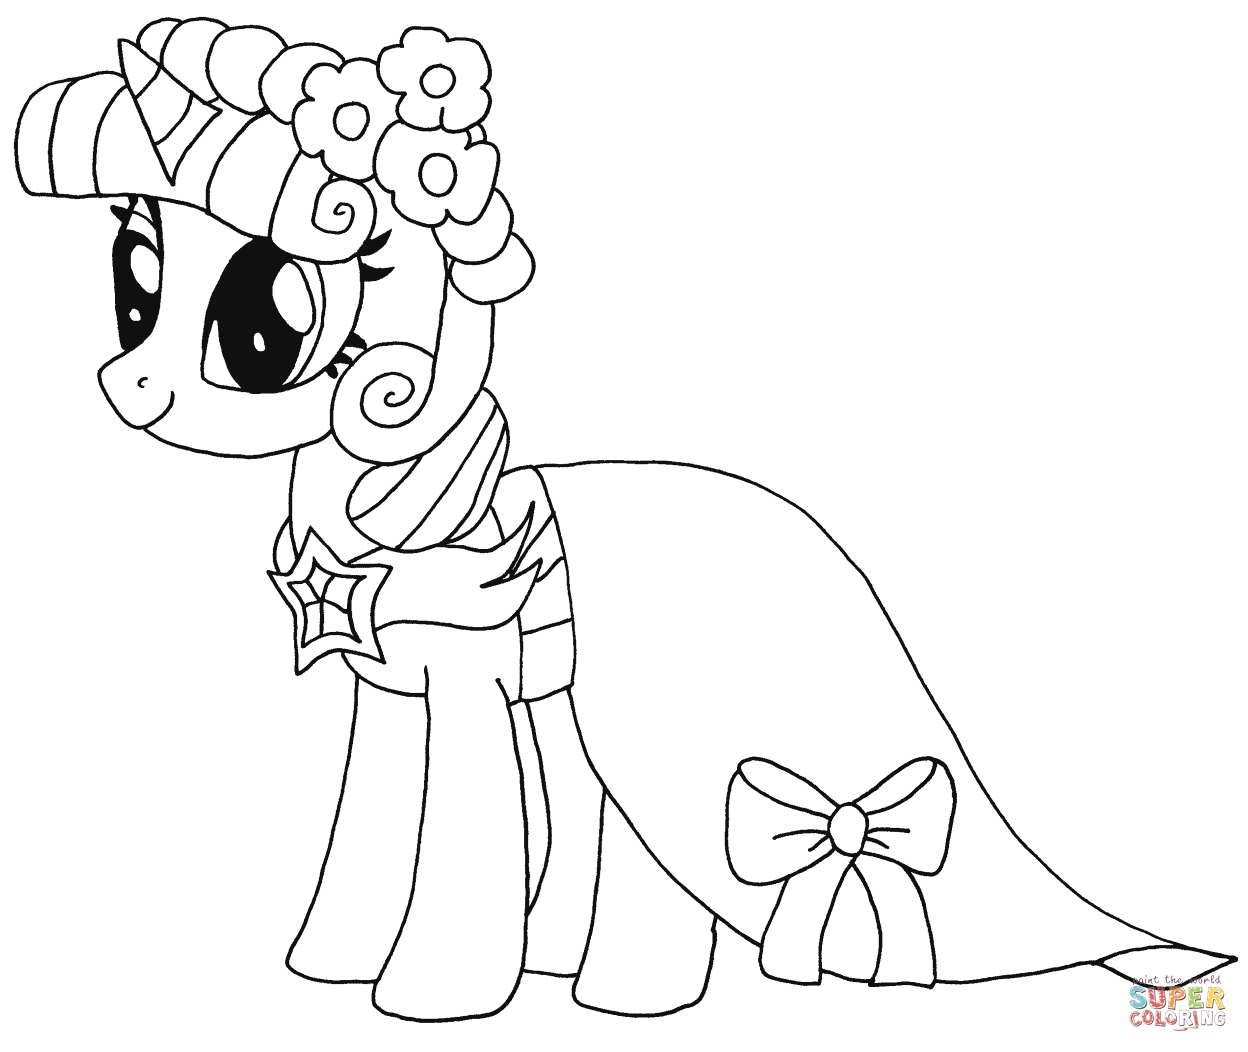 24 Twilight Coloring Pages Pictures | FREE COLORING PAGES - Part 3